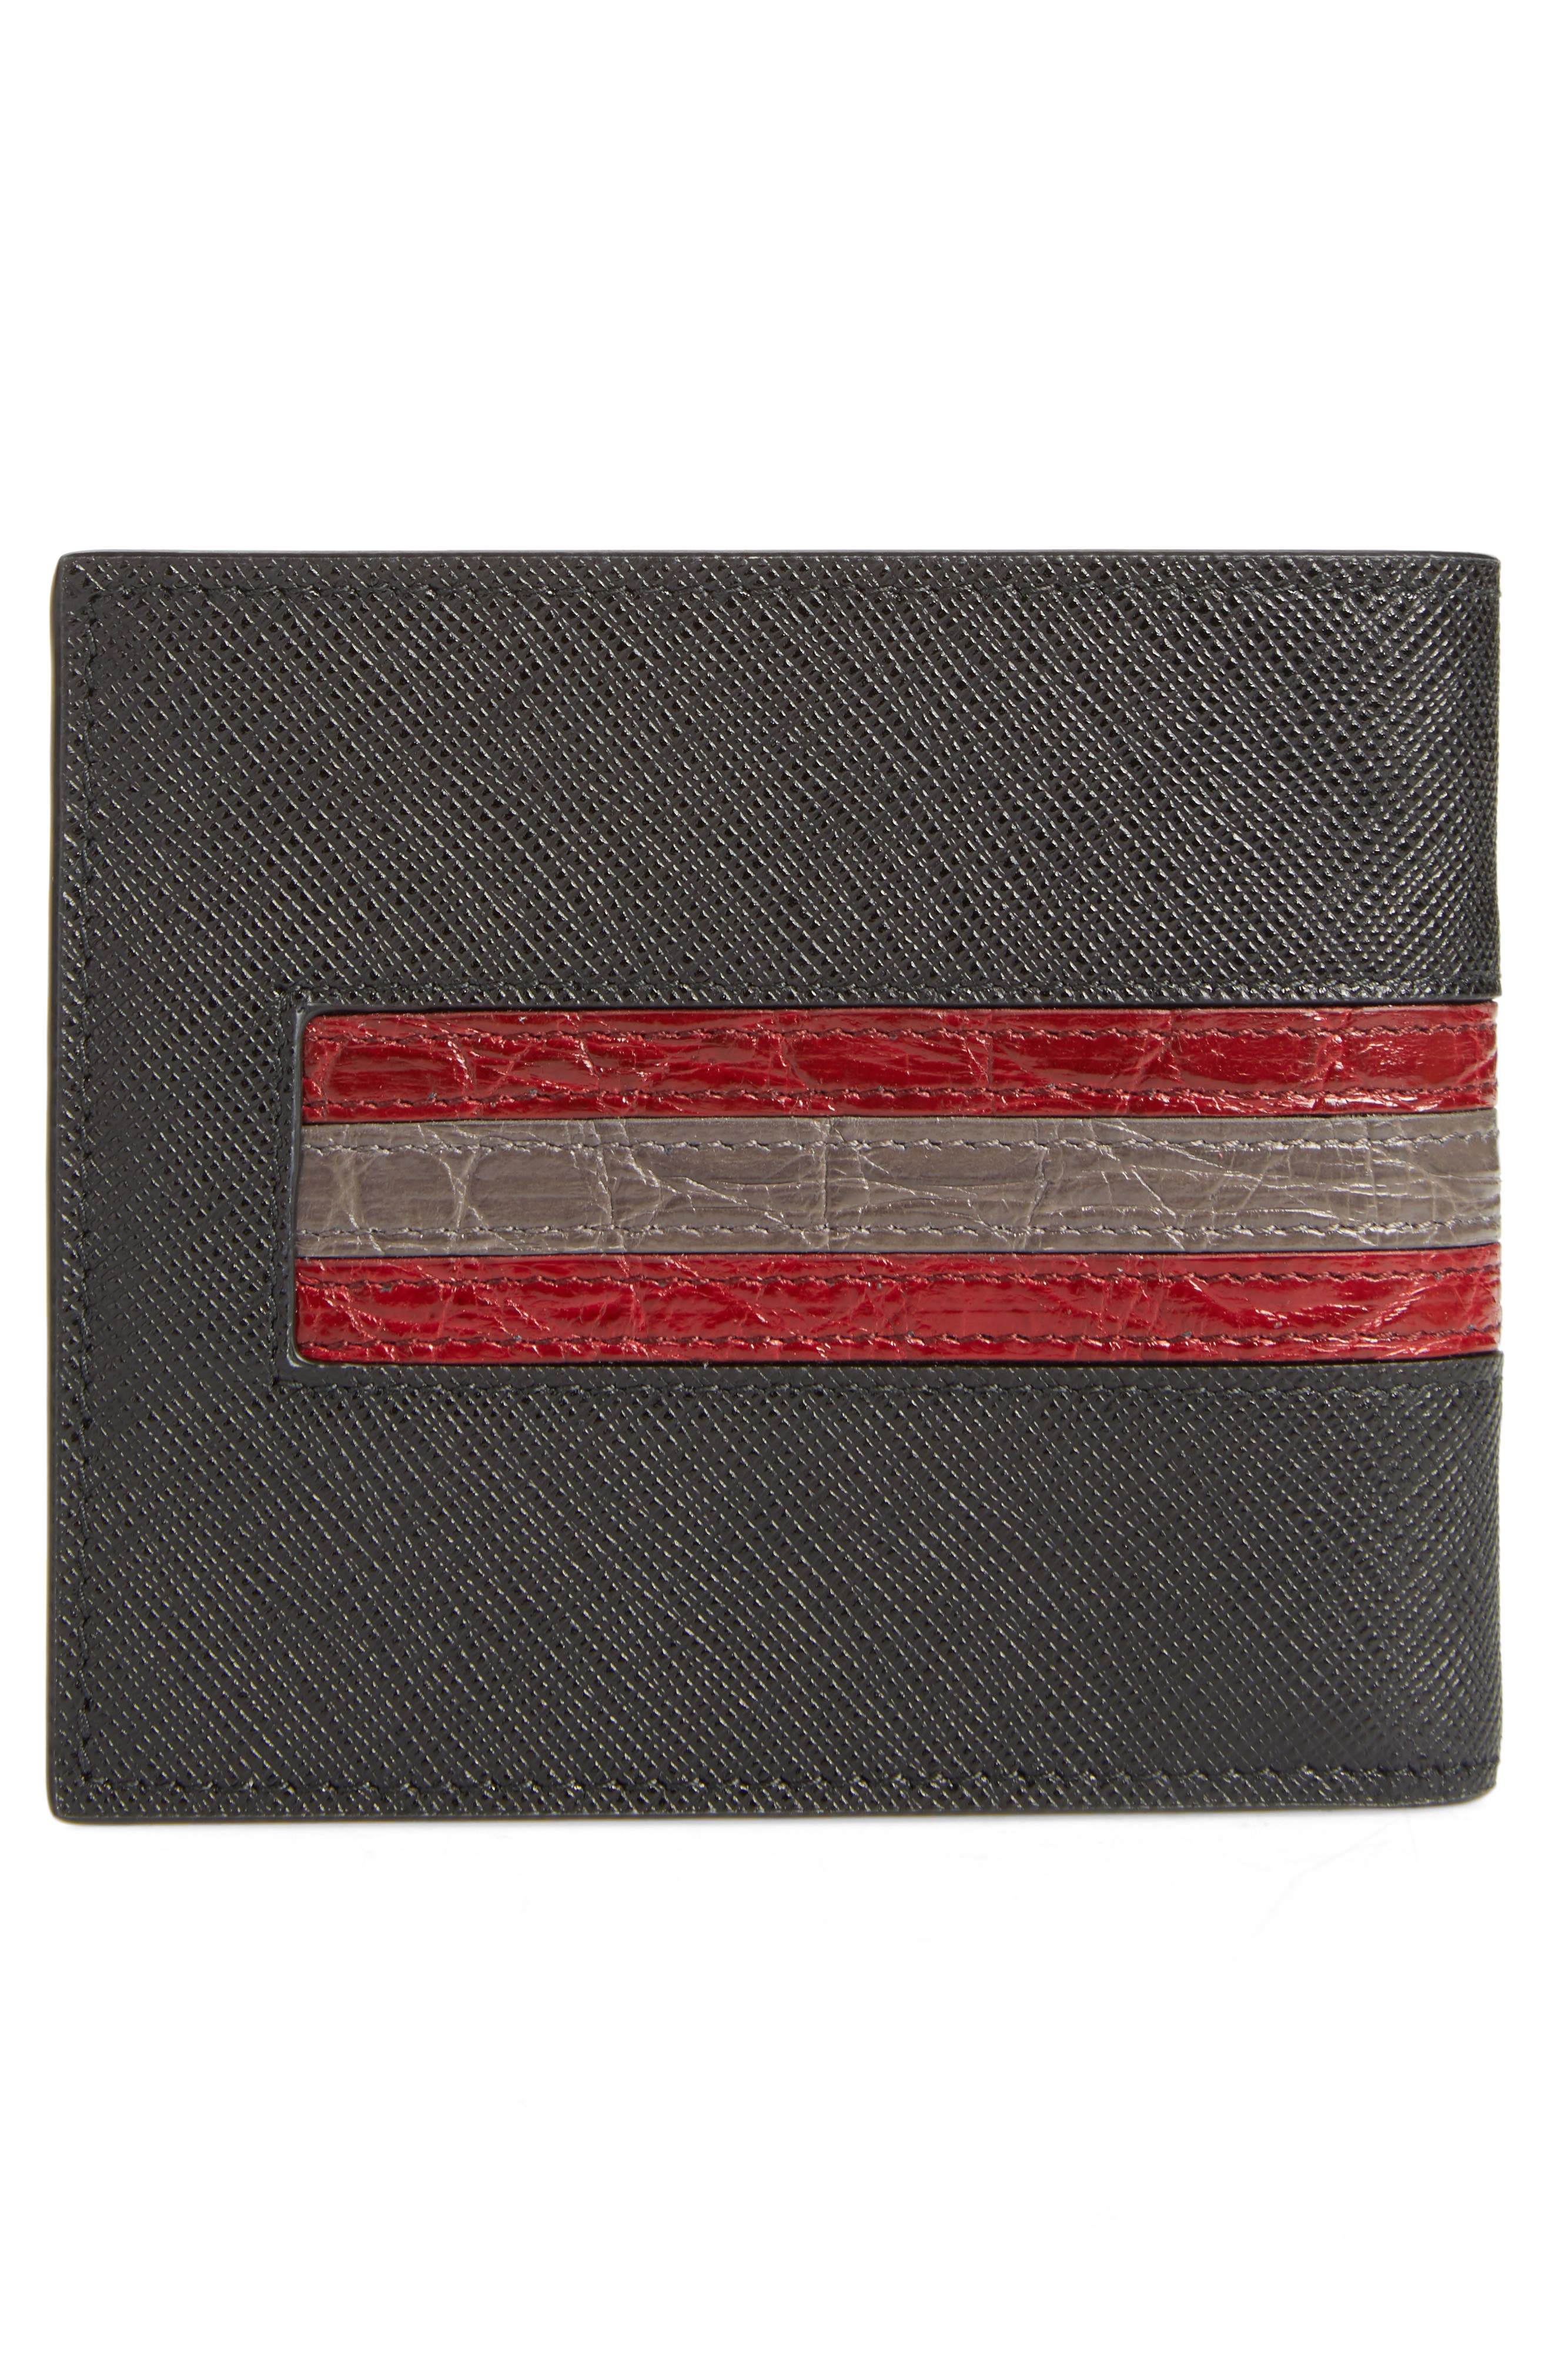 Saffiano and Crocodile Leather Wallet,                             Alternate thumbnail 3, color,                             004